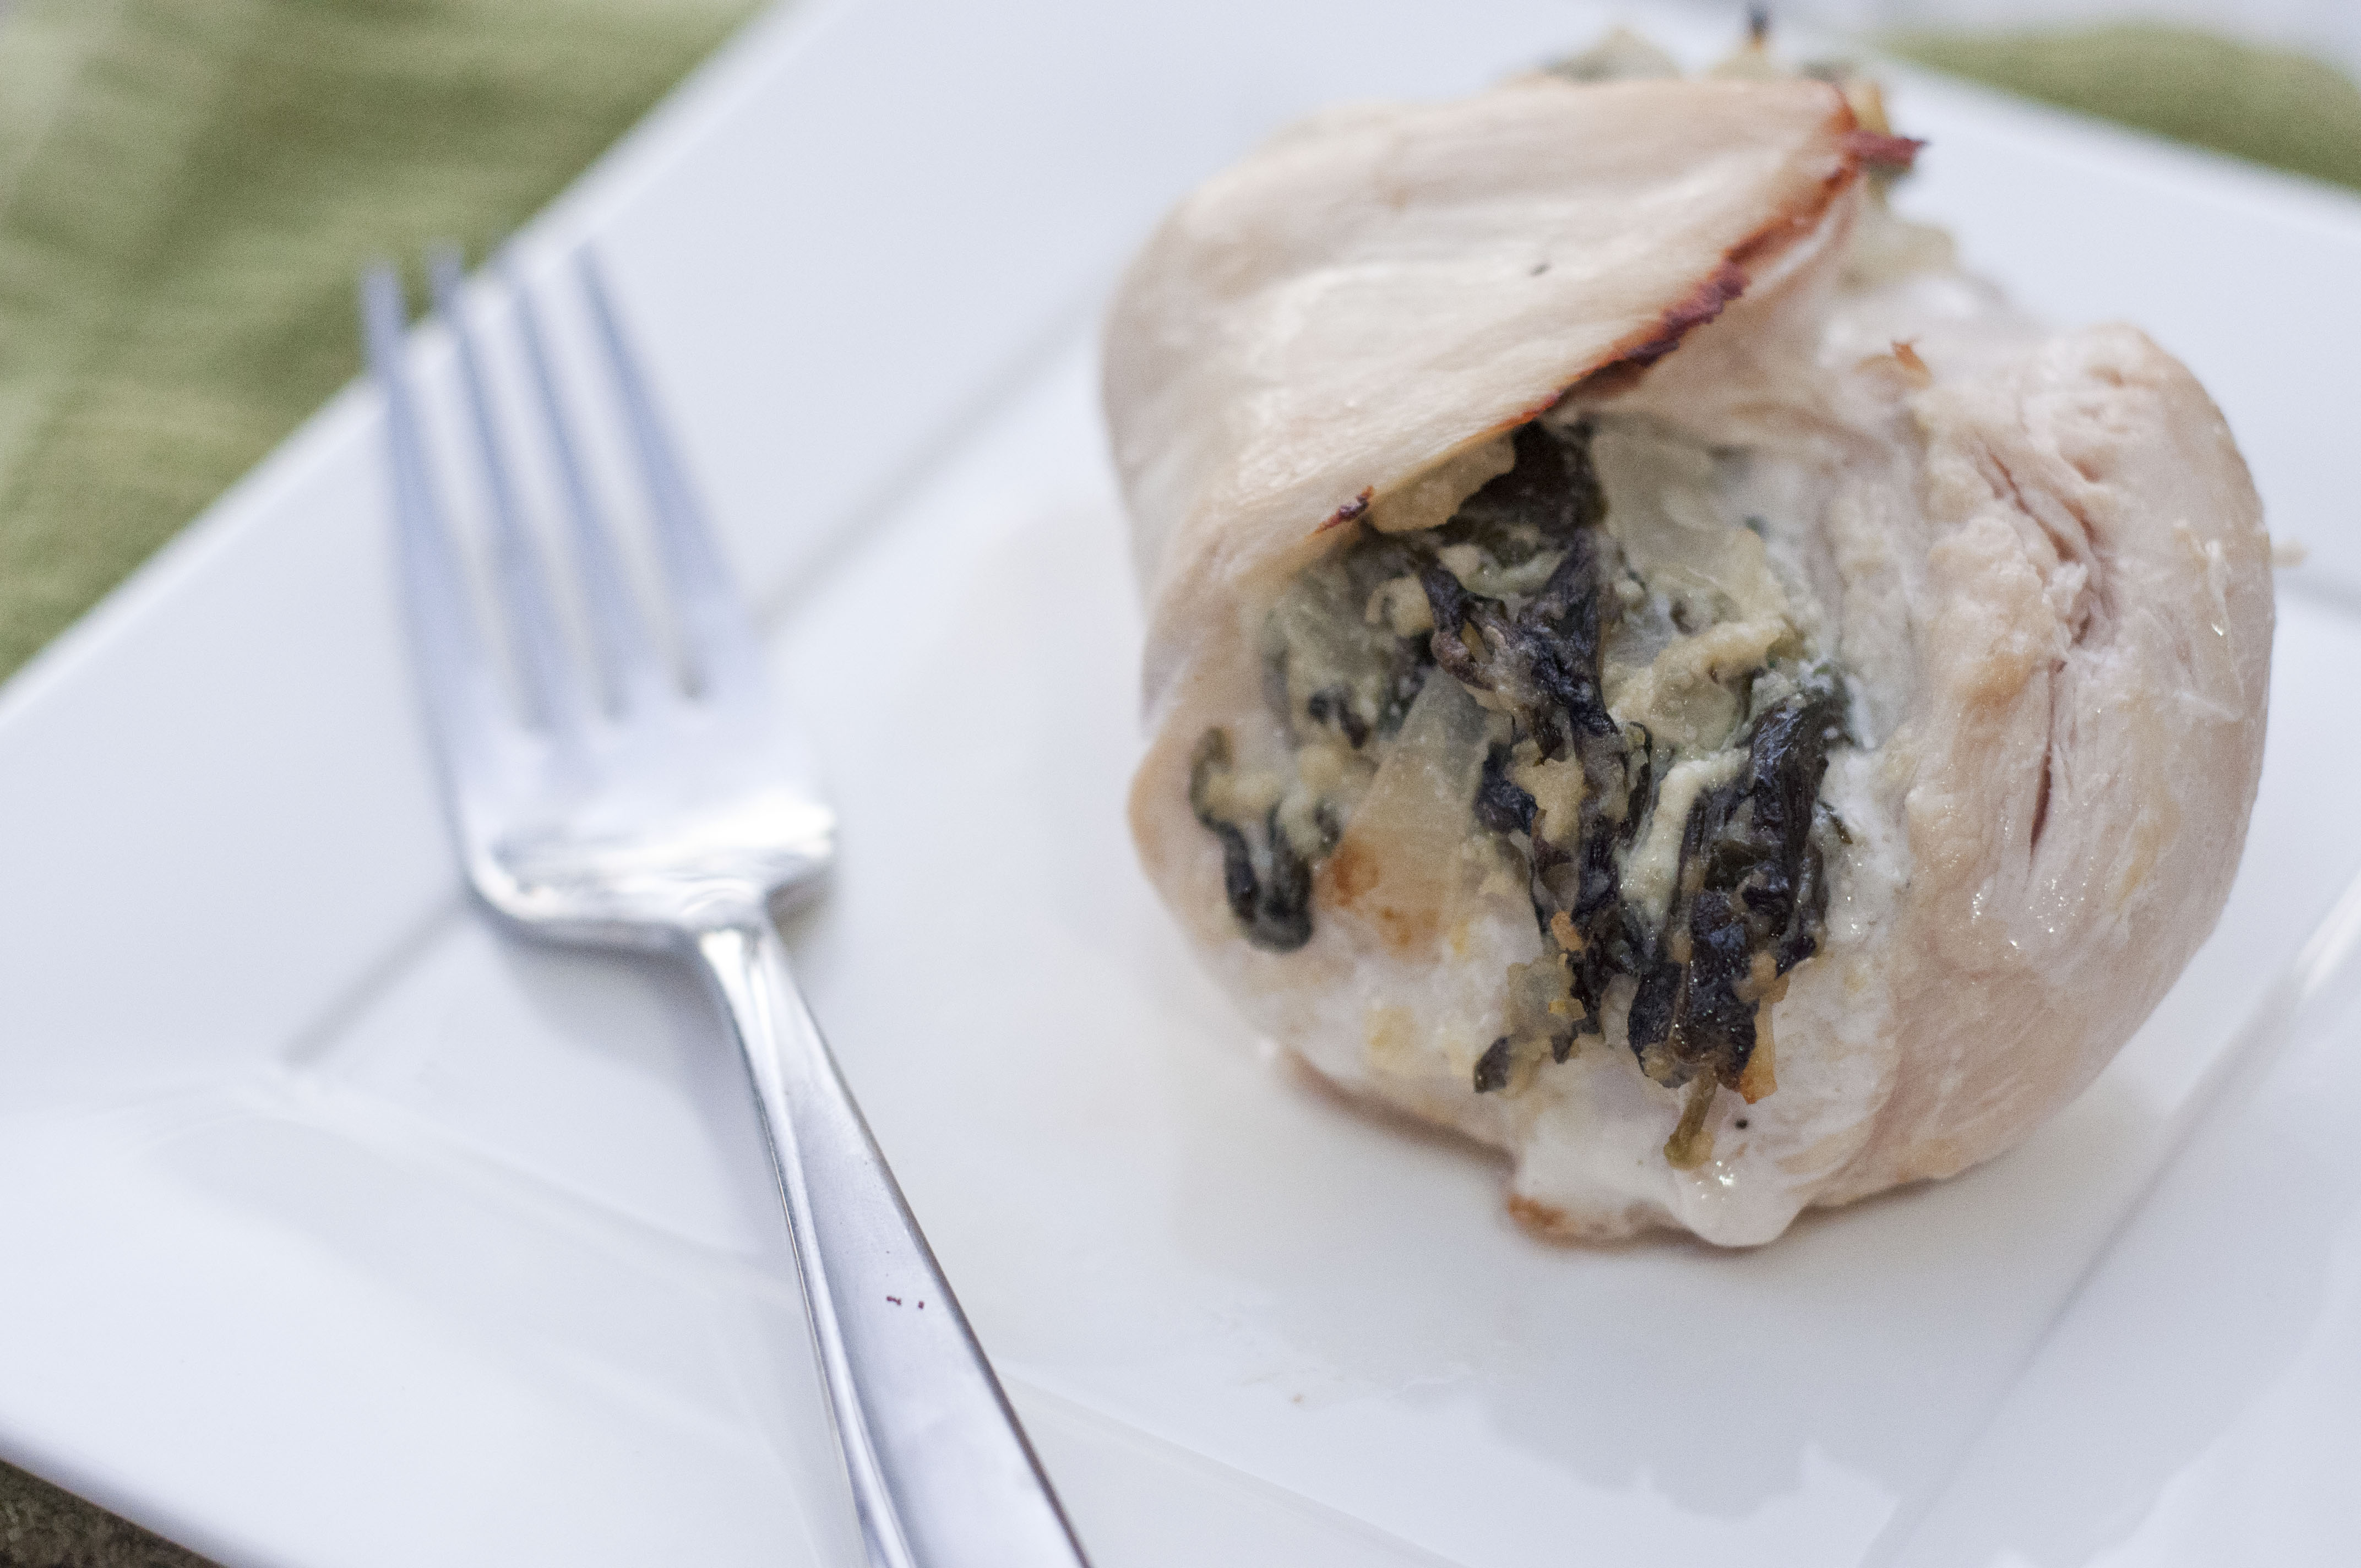 This photo depicts a delicious Spinach and Feta Stuffed Chicken Breast.